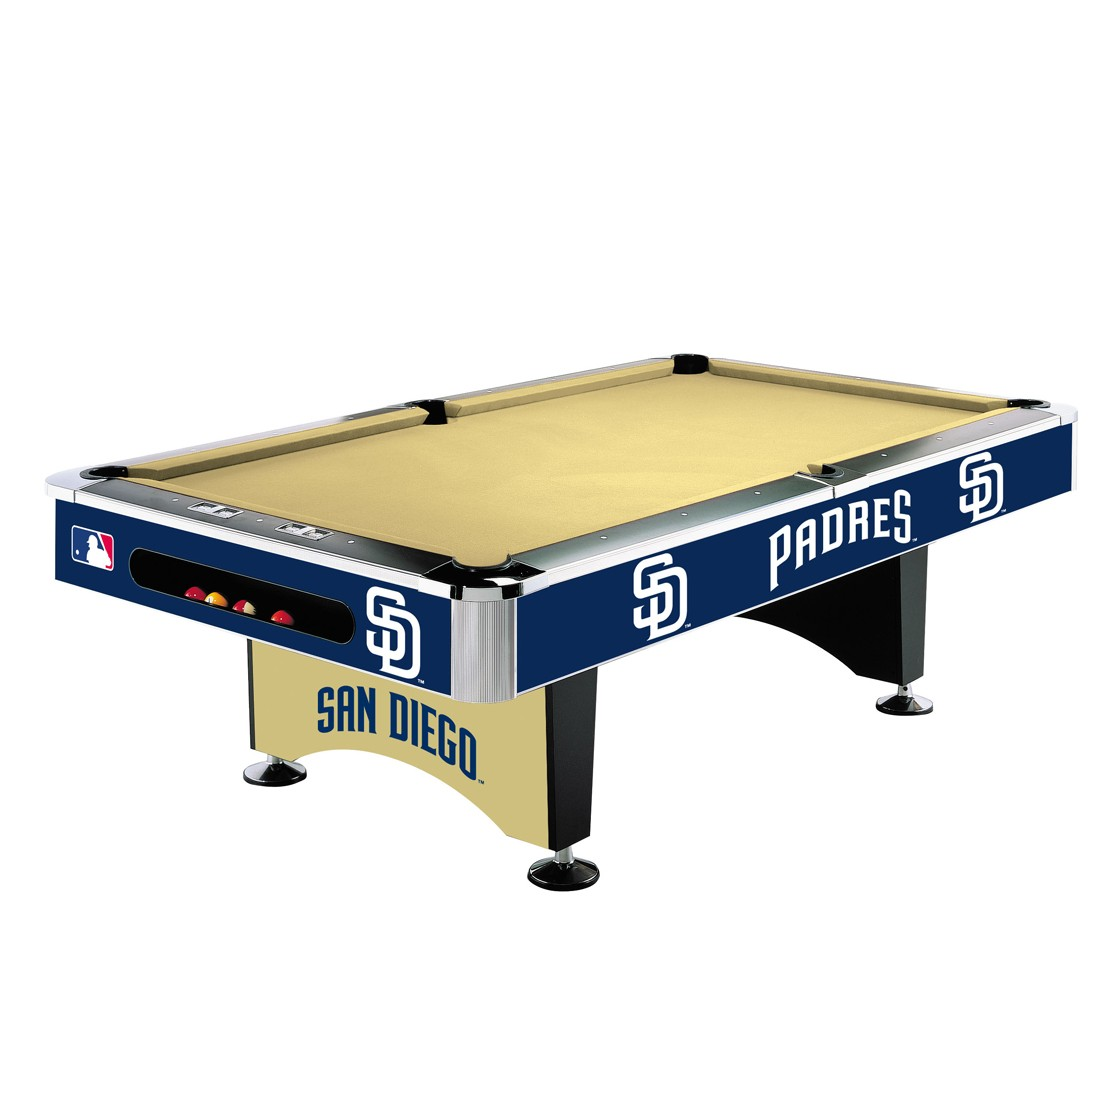 SAN DIEGO PADRES 8-FT. POOL TABLE